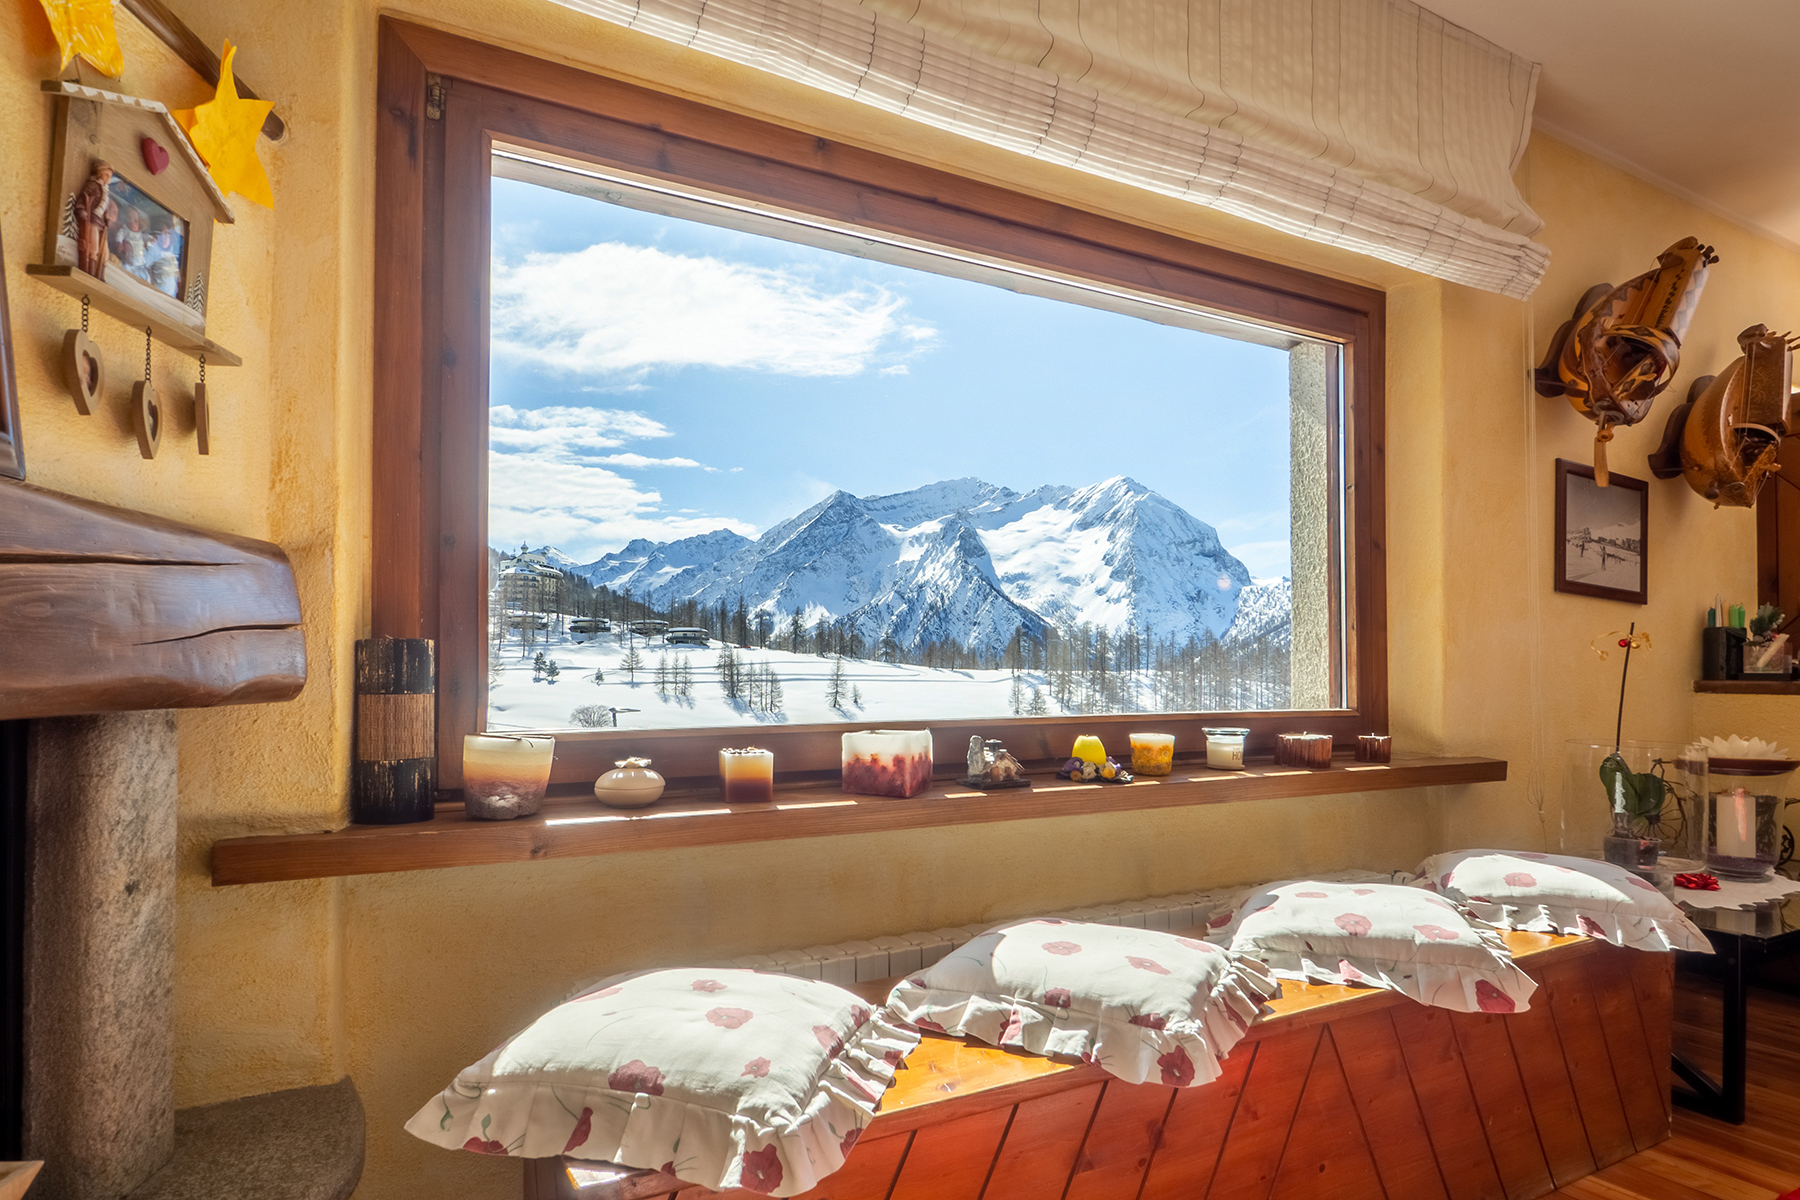 Single Family Homes for Sale at Residential property for Sale in Sestriere (Italy) Sestriere, Turin Italy